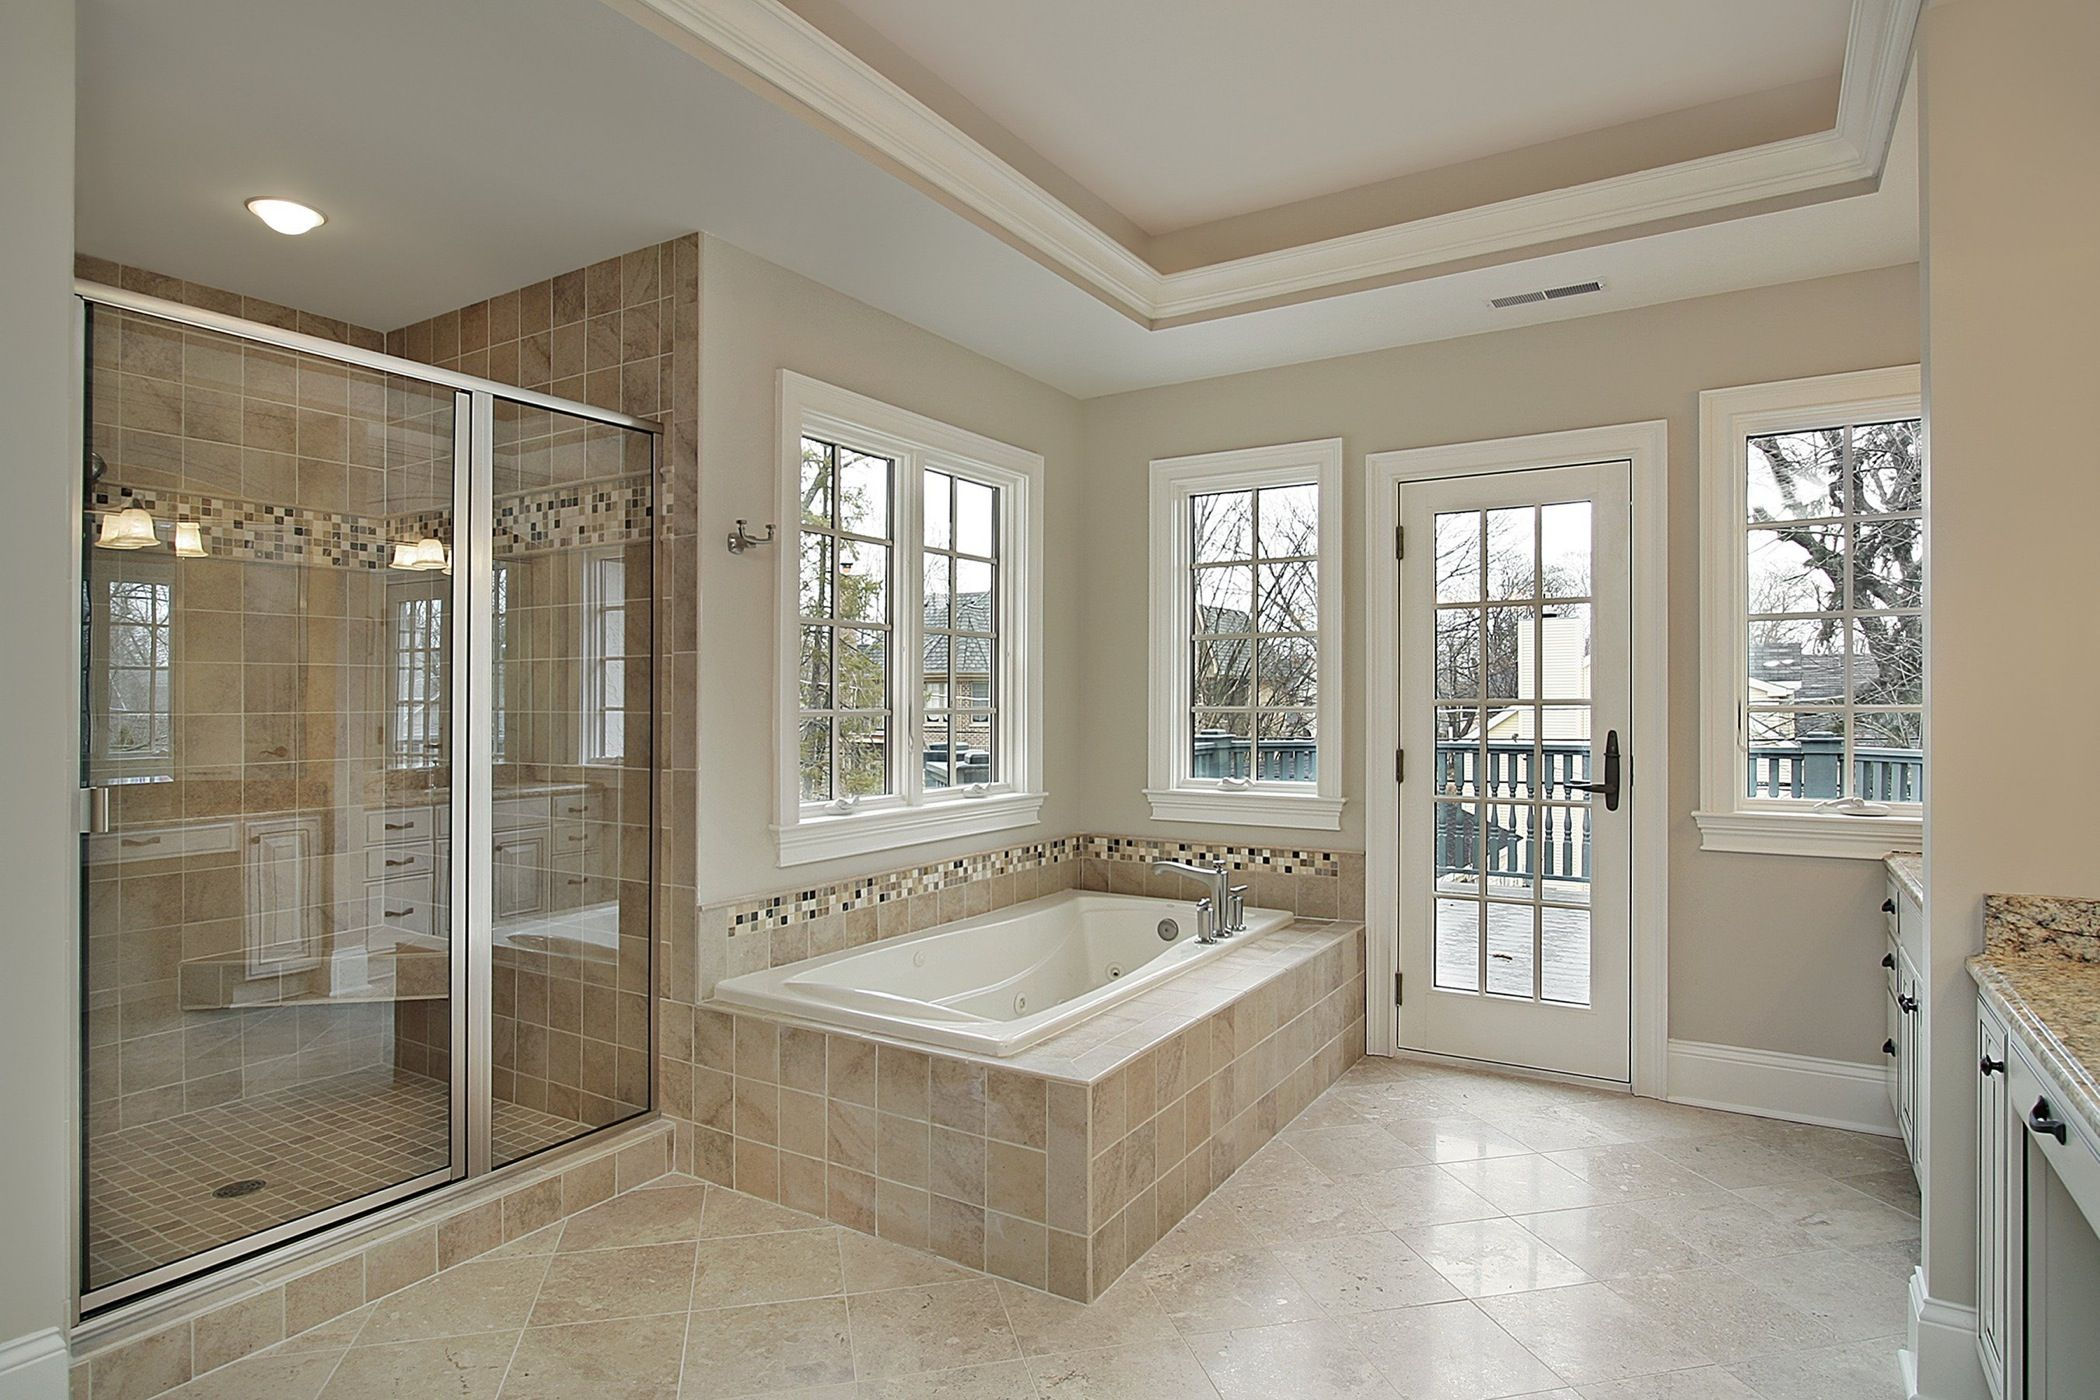 don and istock blog supply donts boise bathroom ts dos do building franklin s remodel remodeling